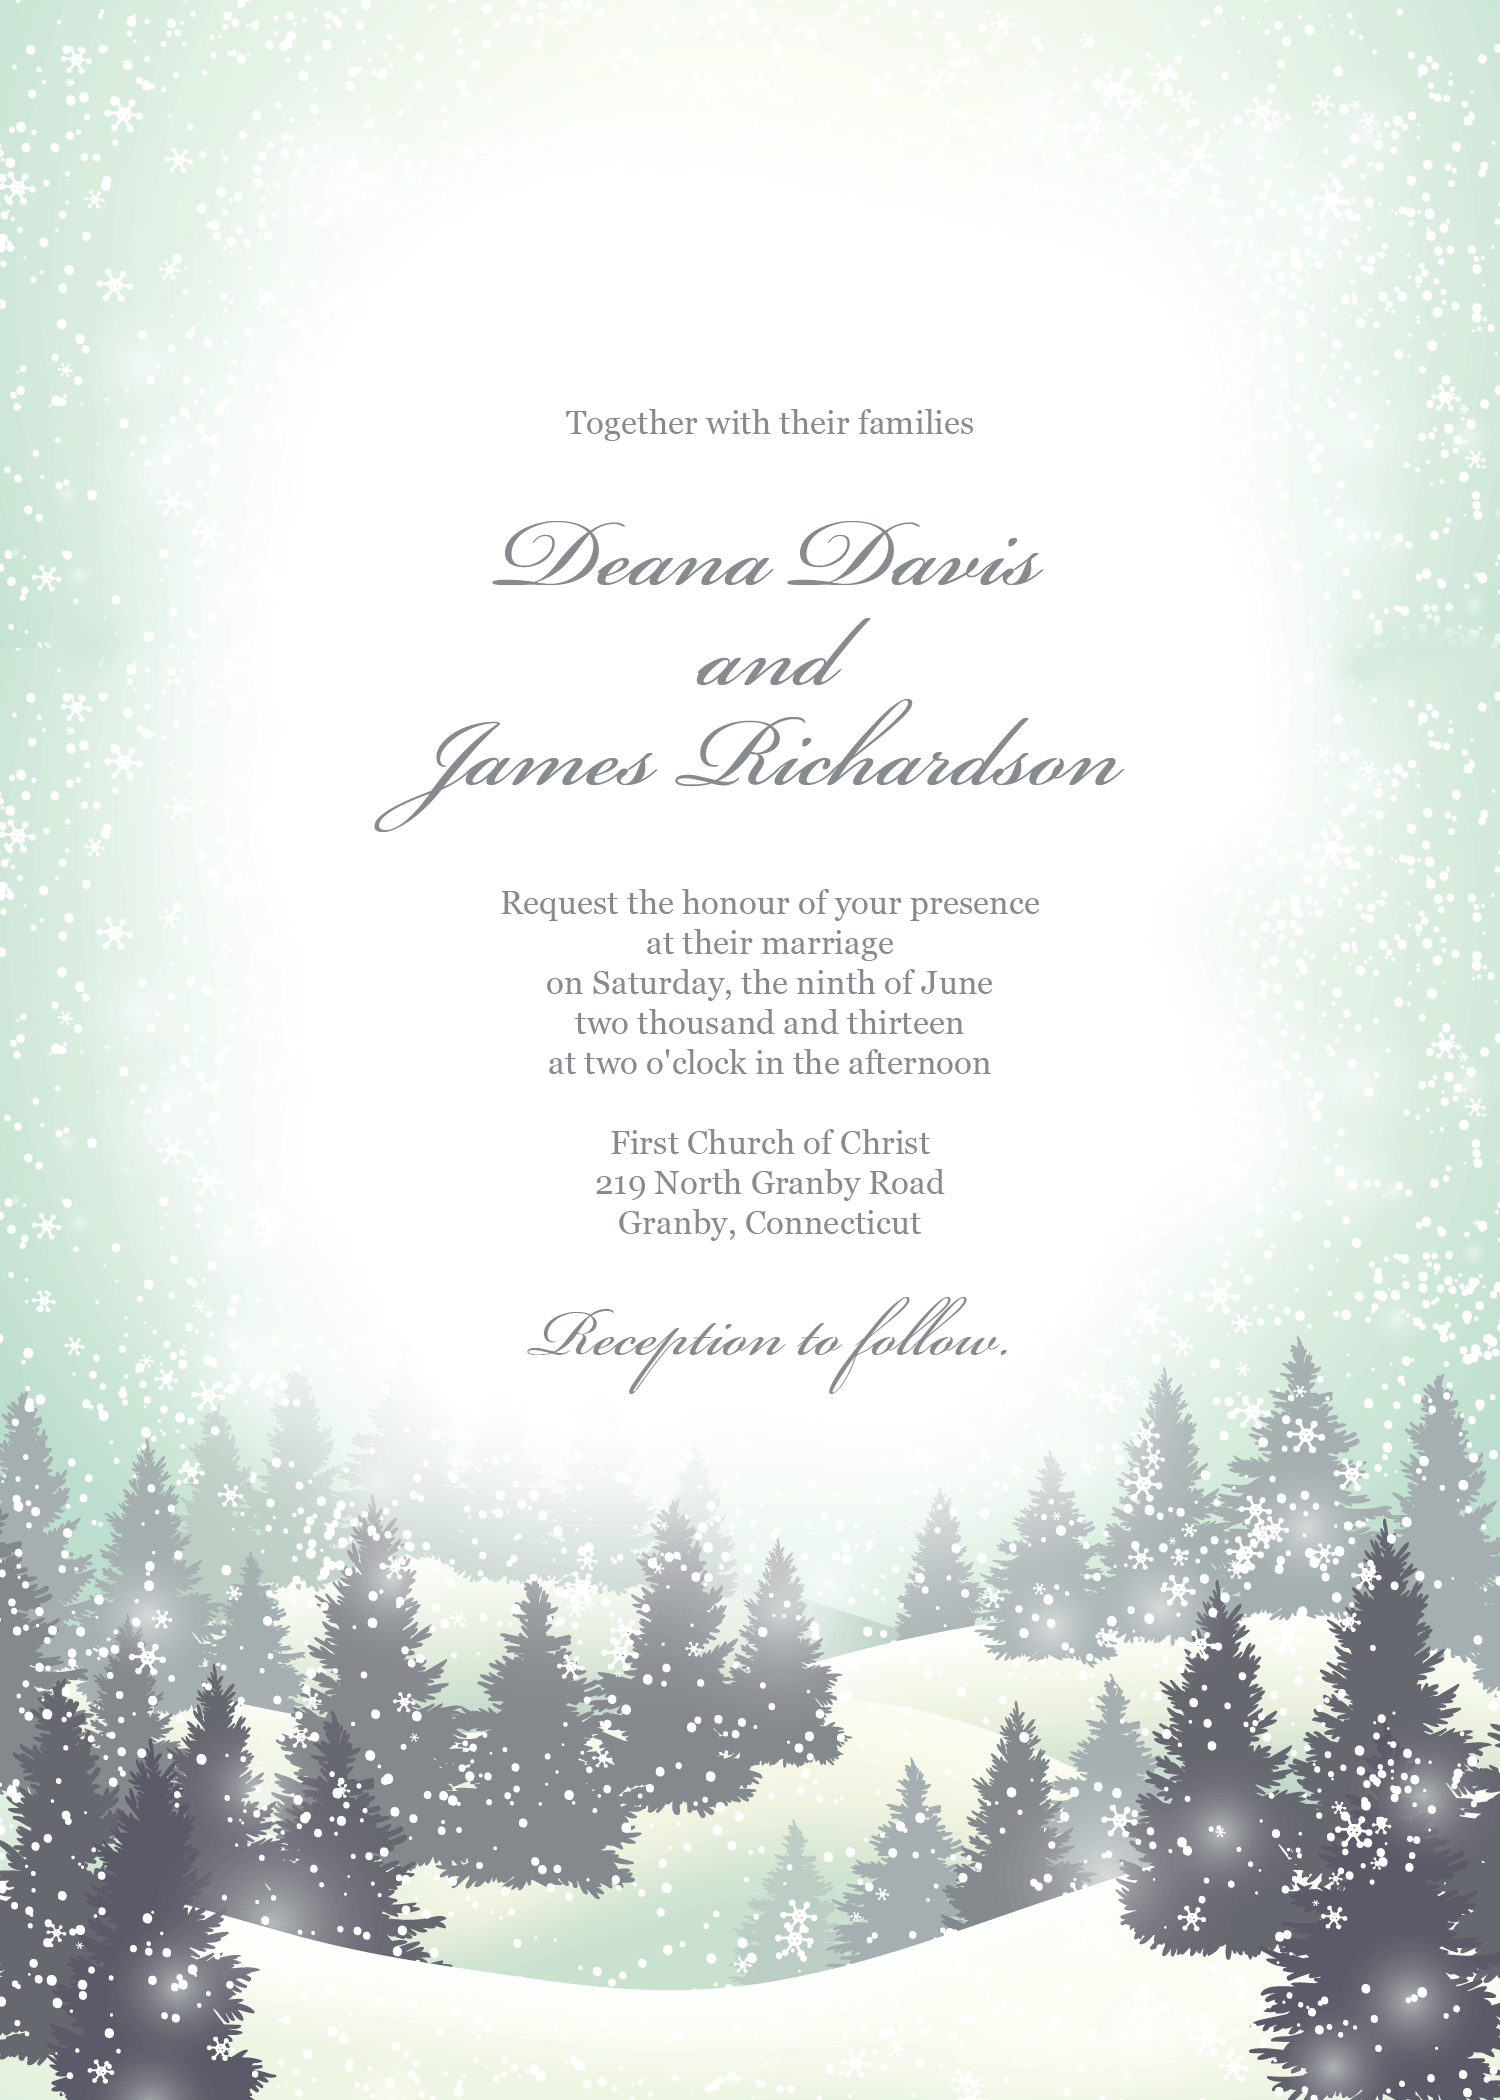 Winter wonderland wedding invitation template. Can also be